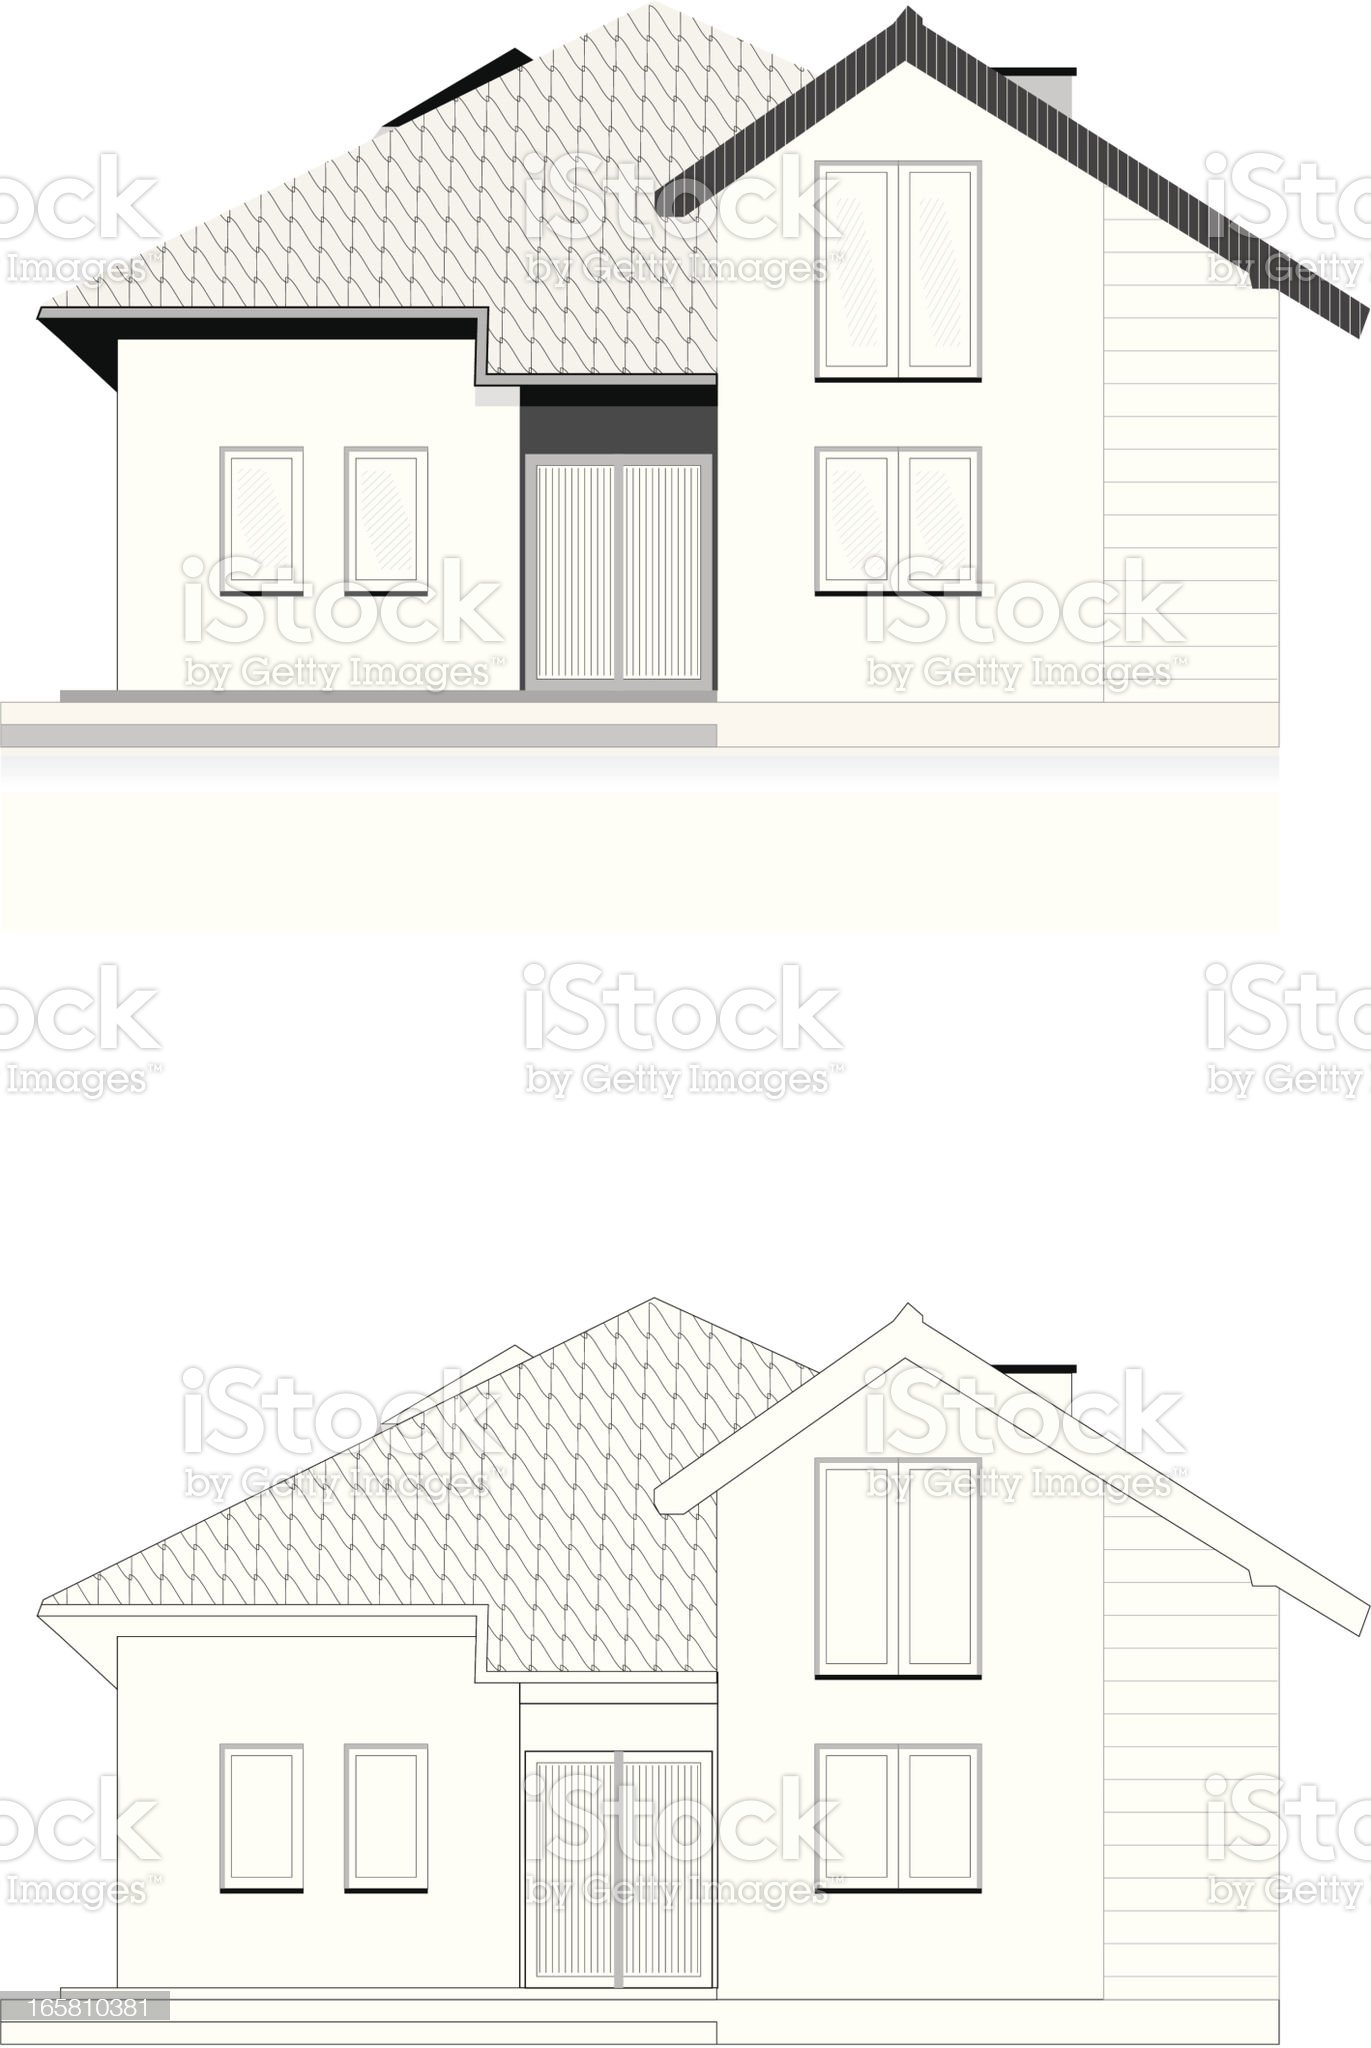 House technical concept draw royalty-free stock vector art